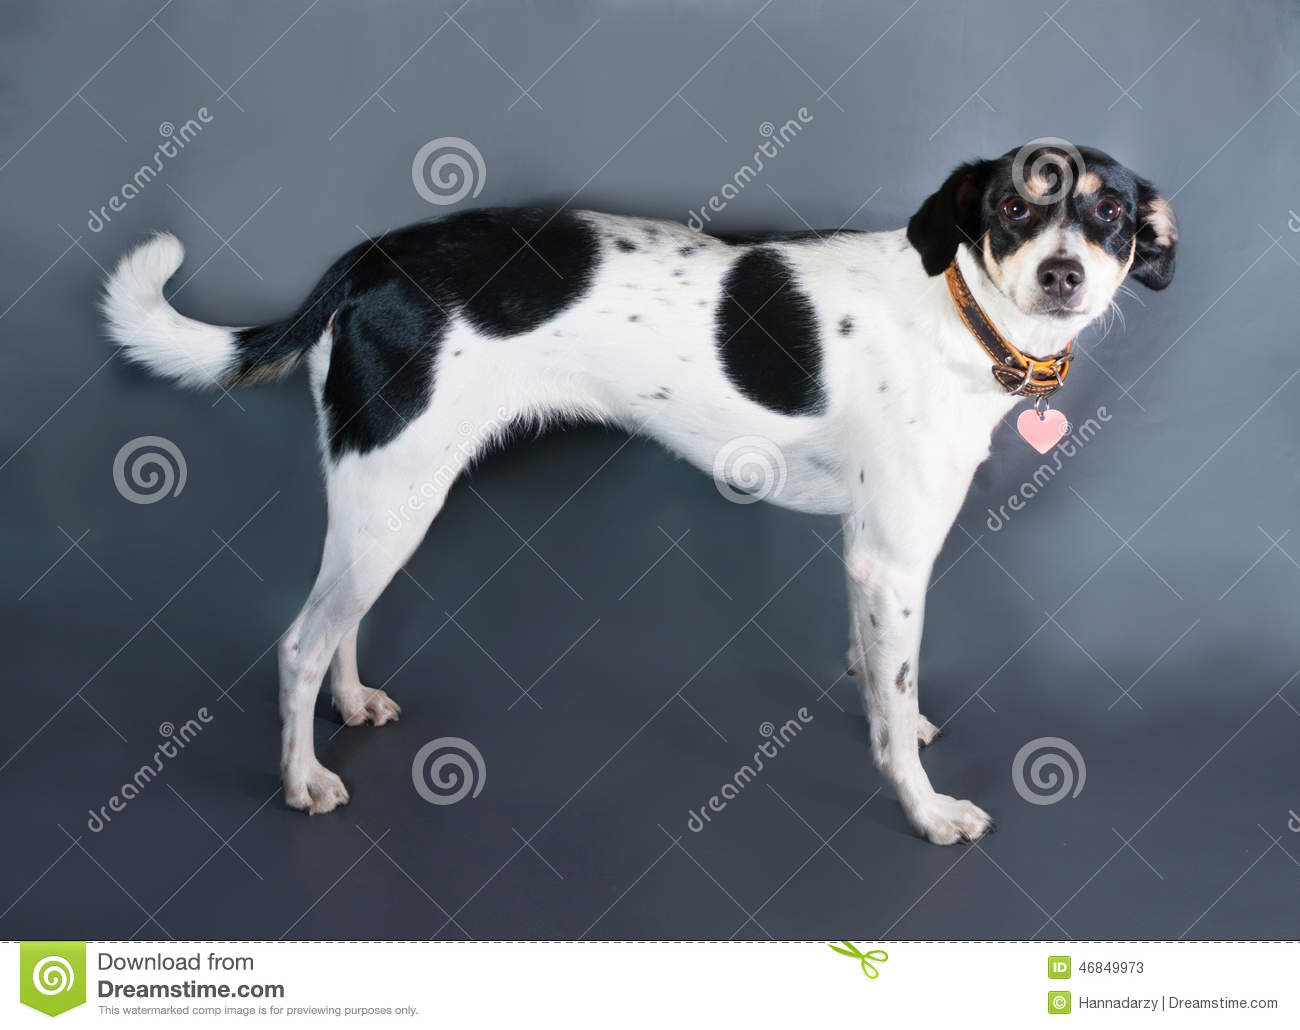 White dog with black spots standing on black